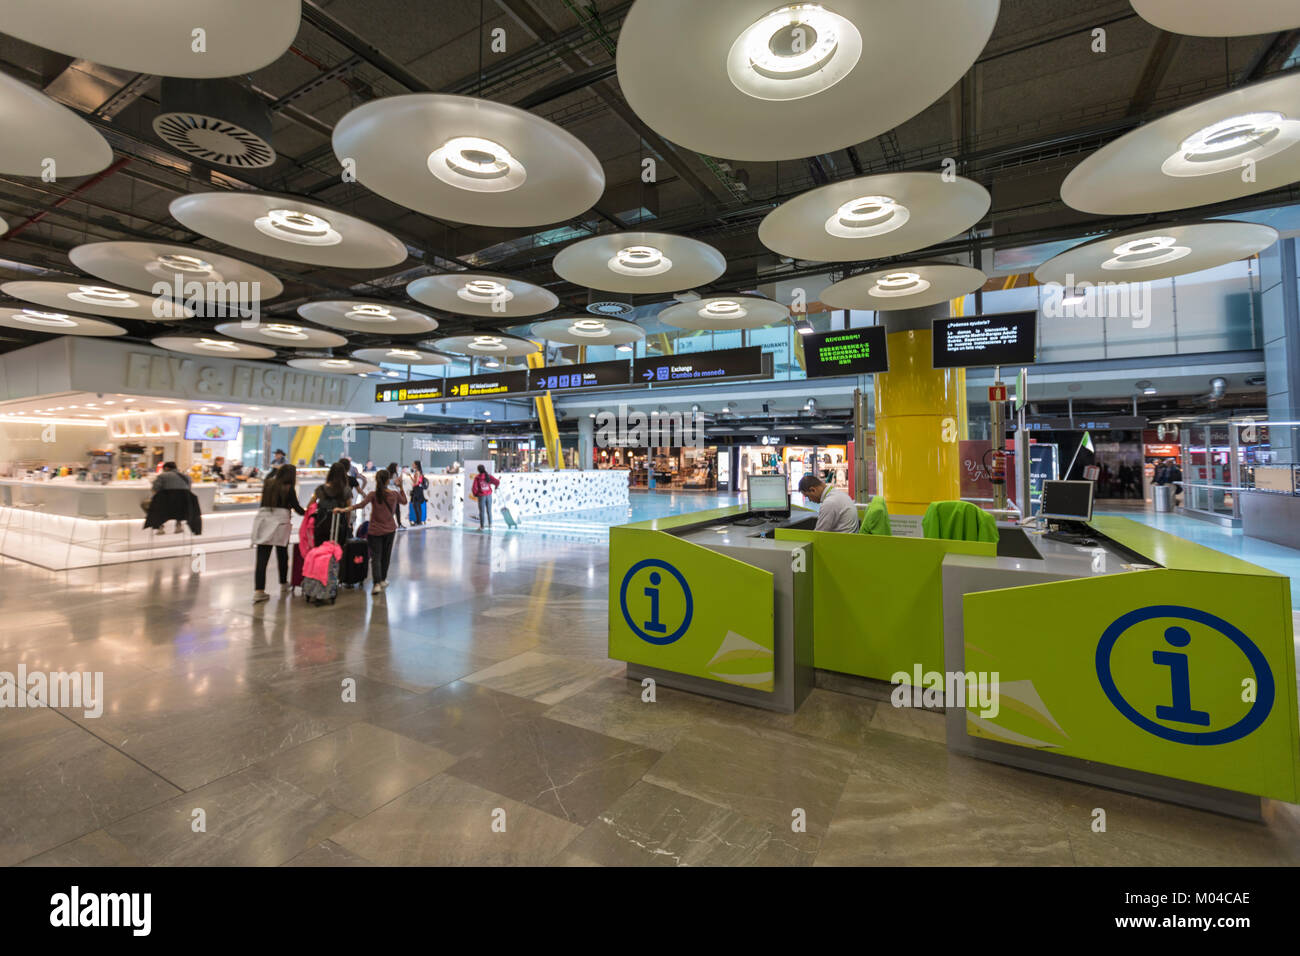 Adolfo Suárez Madrid–Barajas Airport  terminals T4 information desk, designed by architects Antonio Lamela - Stock Image